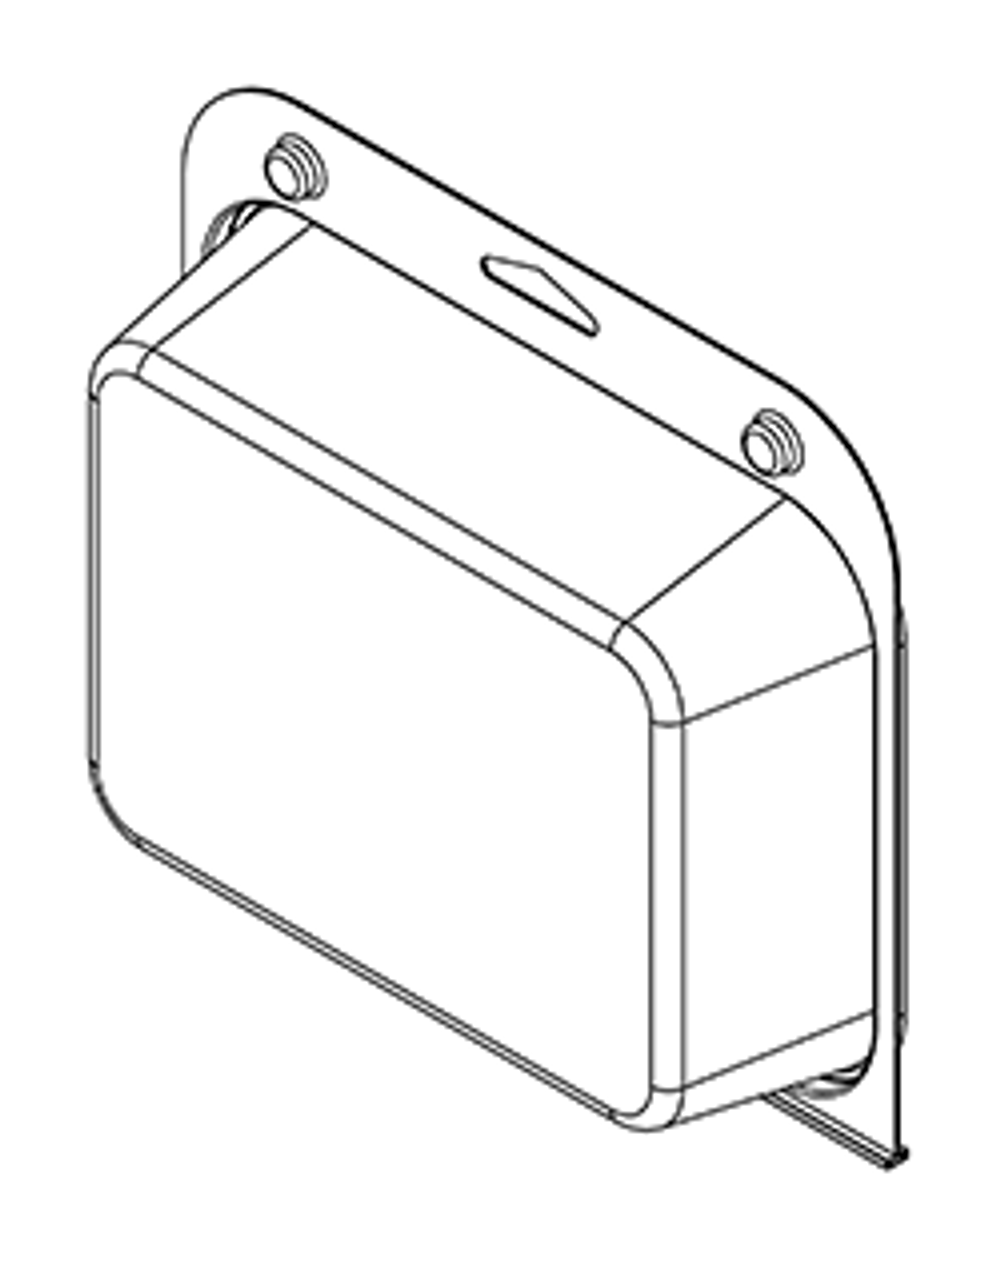 304TF - Stock Clamshell Packaging